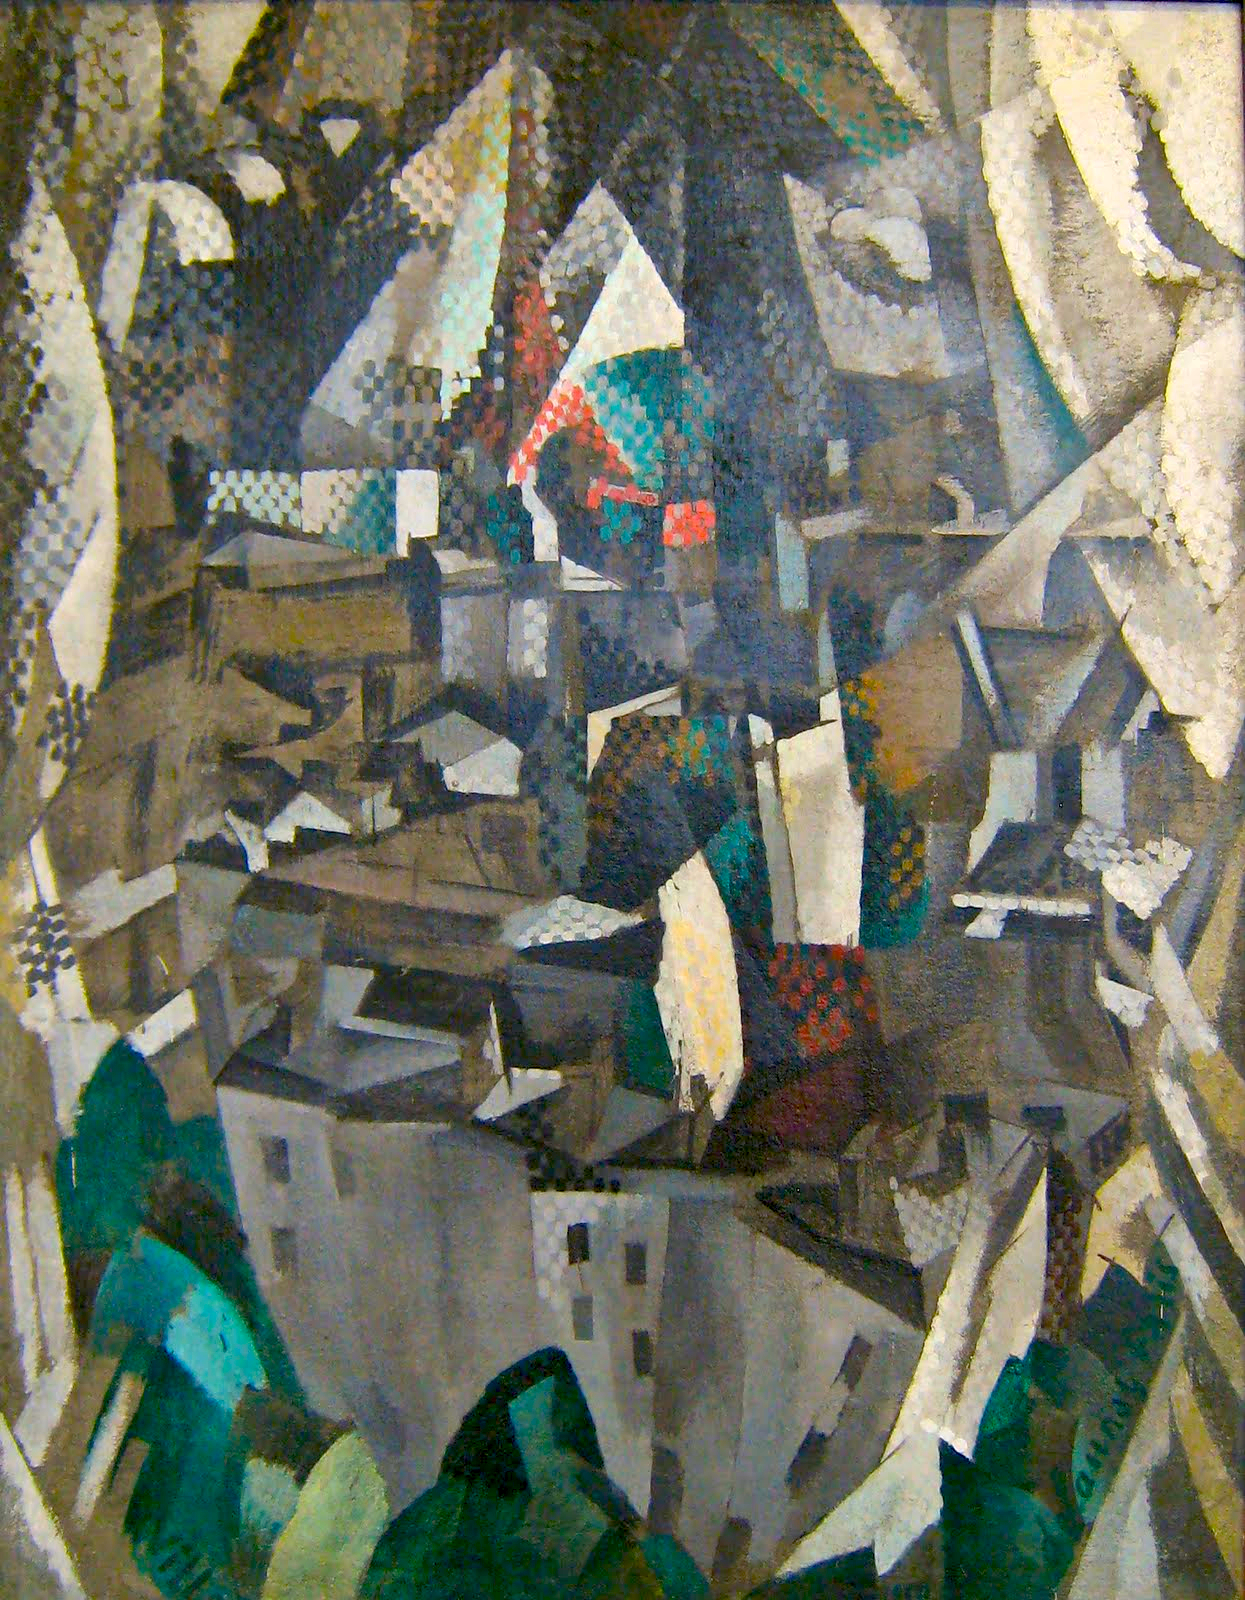 Tableau Moderne Vertical File Robert Delaunay 1910 La Ville No 2 Oil On Canvas 146 X